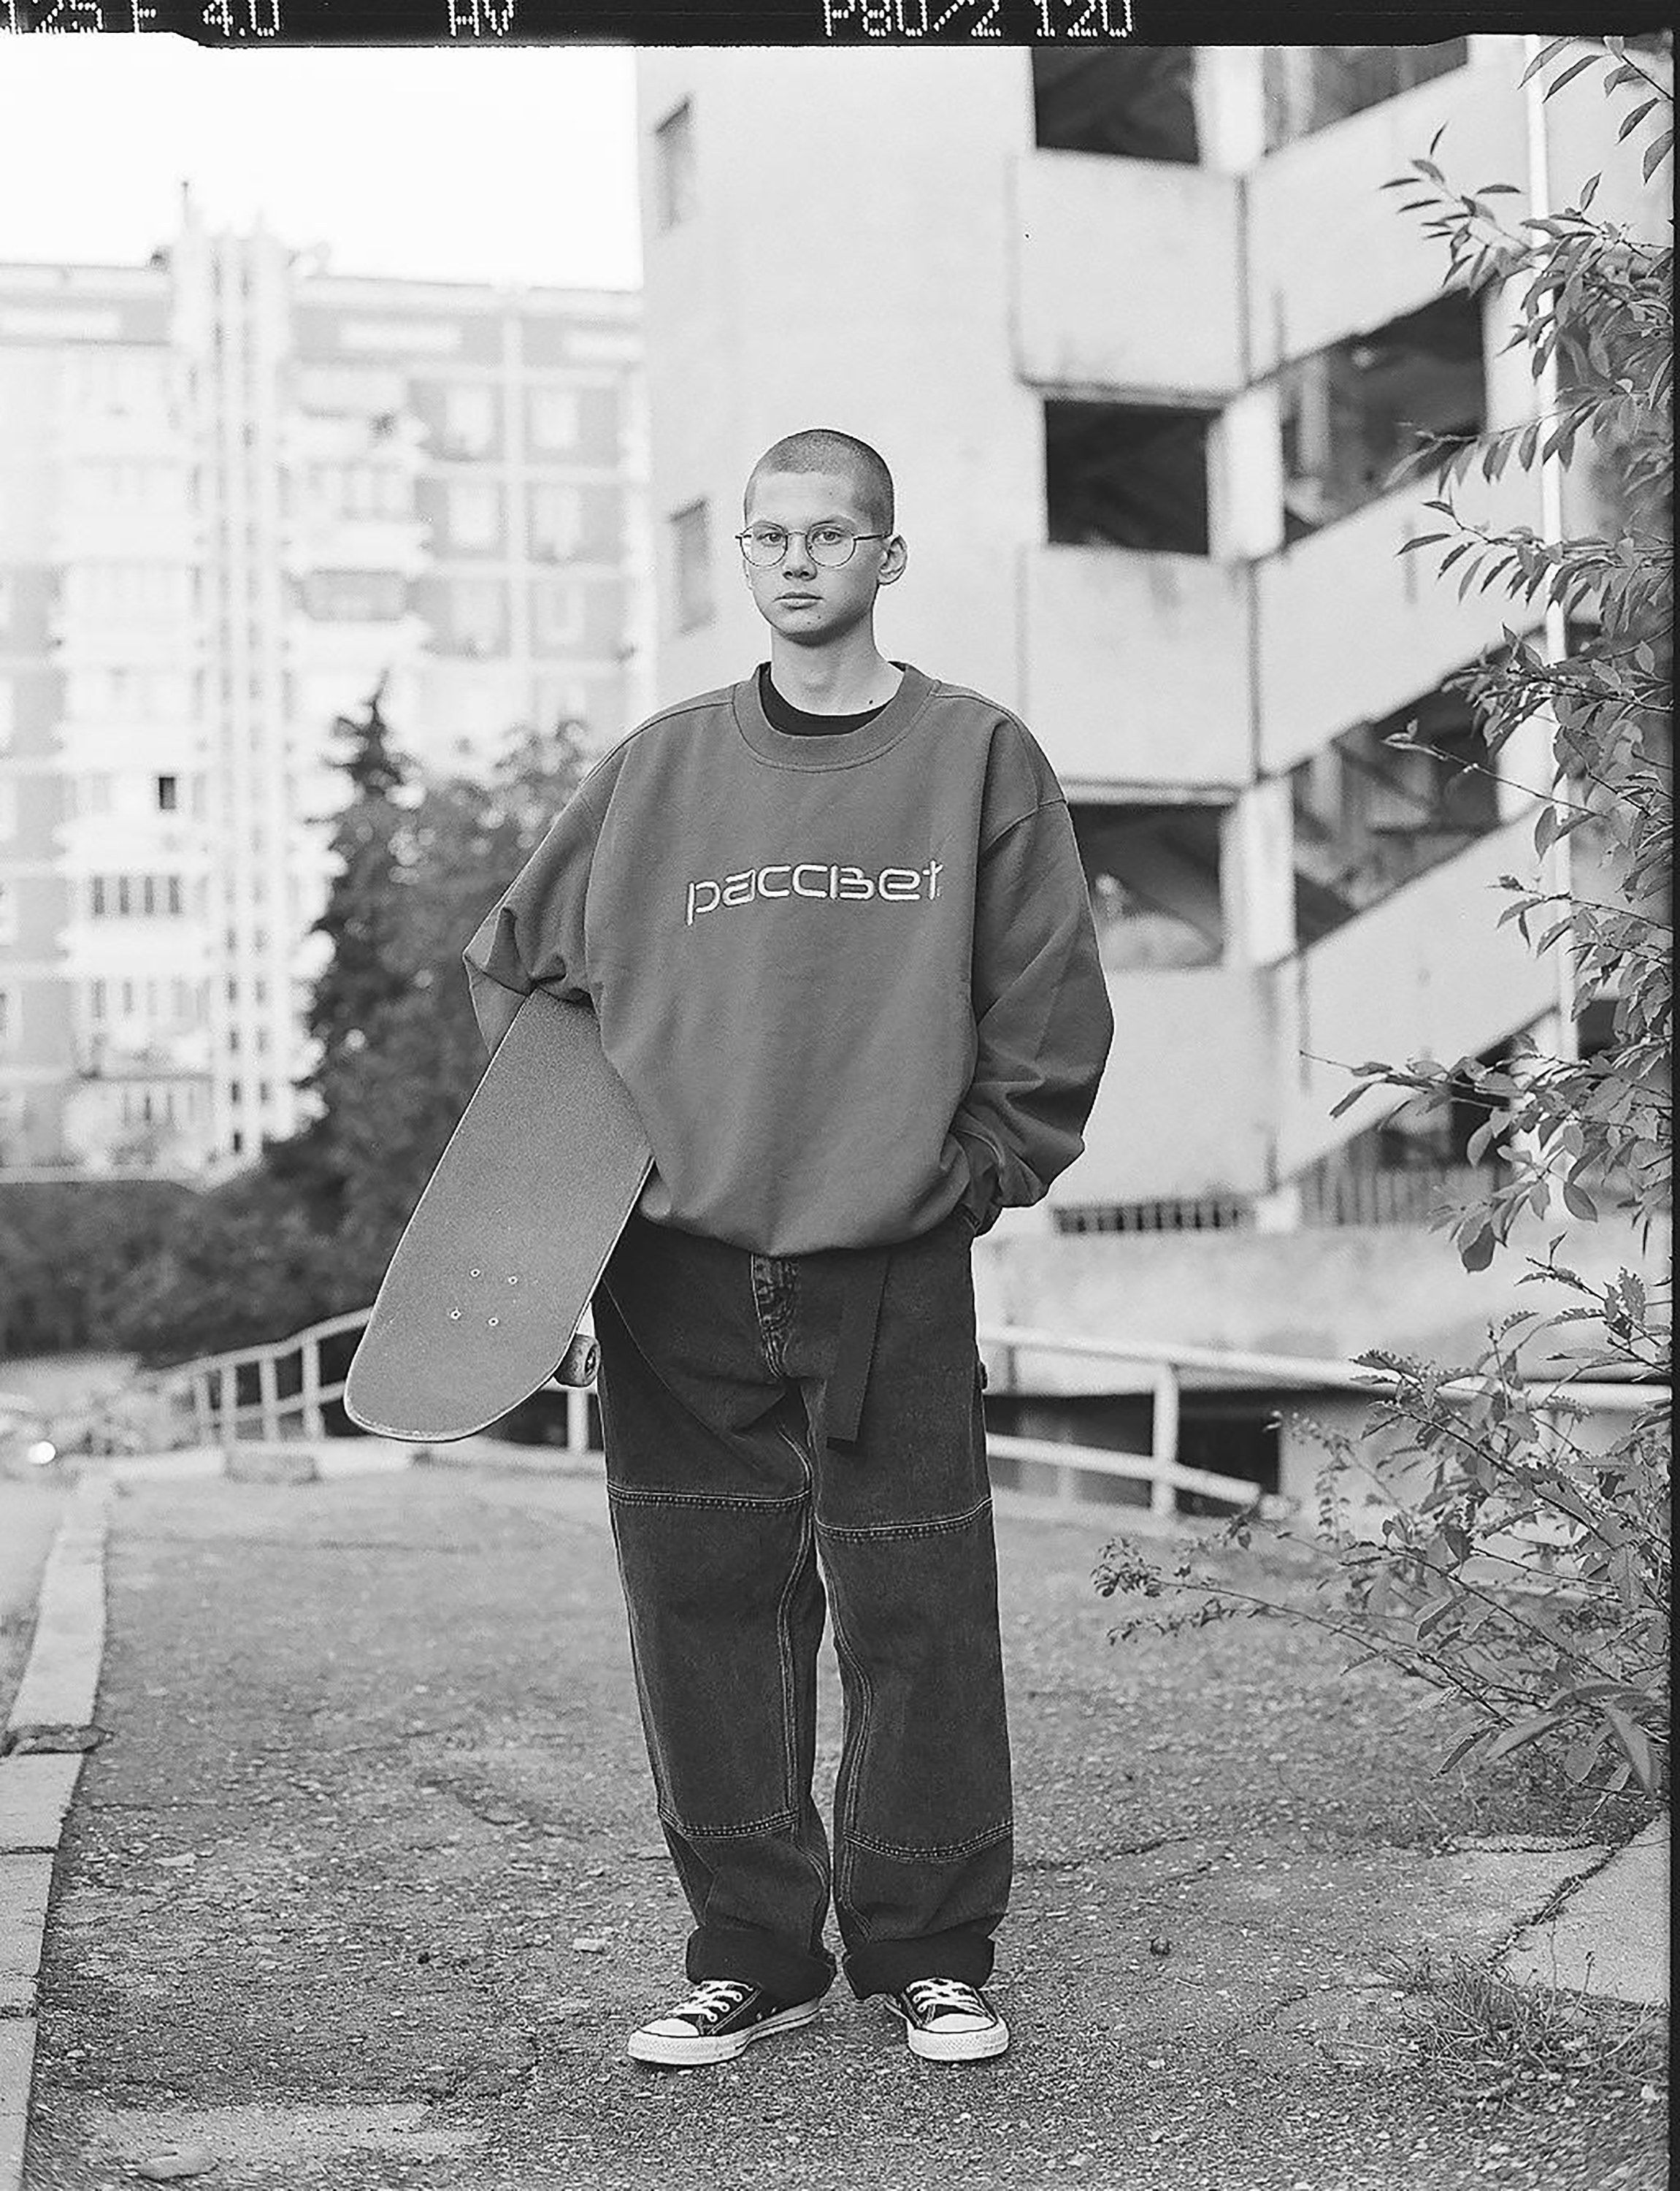 It Gosha Exclusive First That Look Inspired 1995 At Rubchinskiy's Collaboration Carhartt An Ad The And 6xTqwIfT